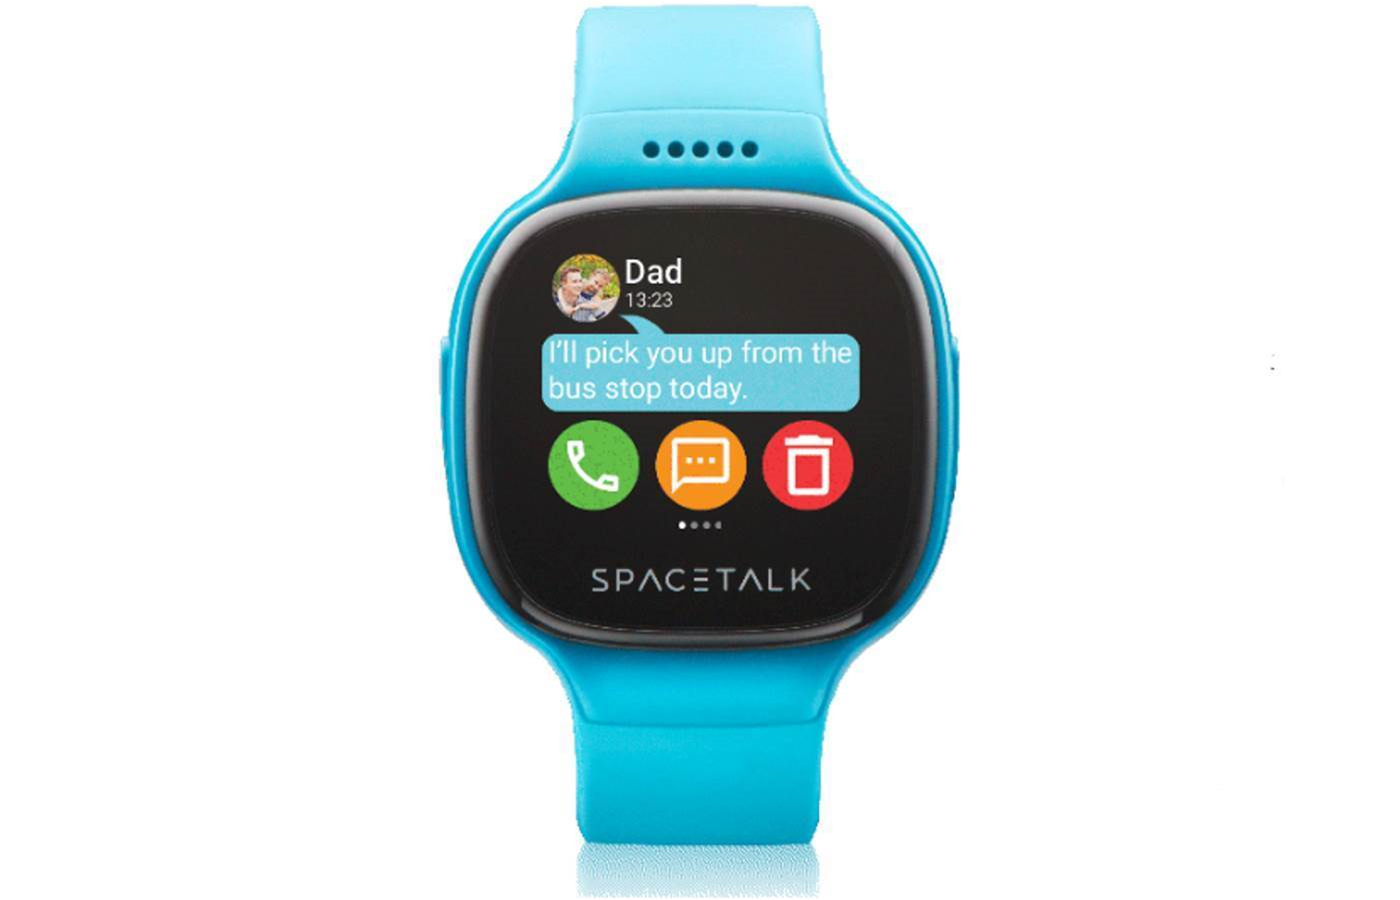 Adelaide vendor lands JB Hi-Fi reseller trial for kids smartwatch